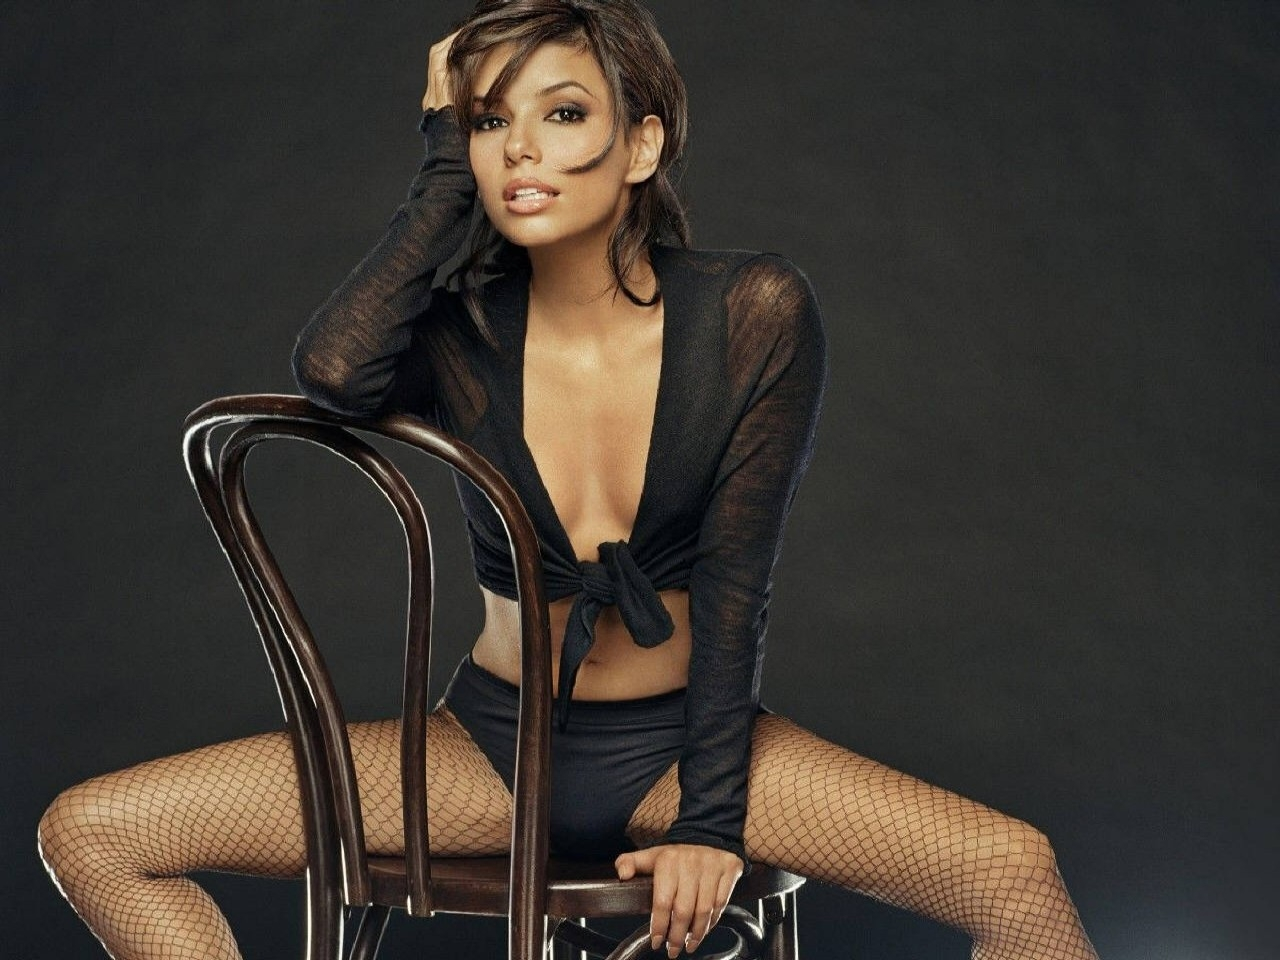 Wallpaper di Eva Longoria Parker in versione hot